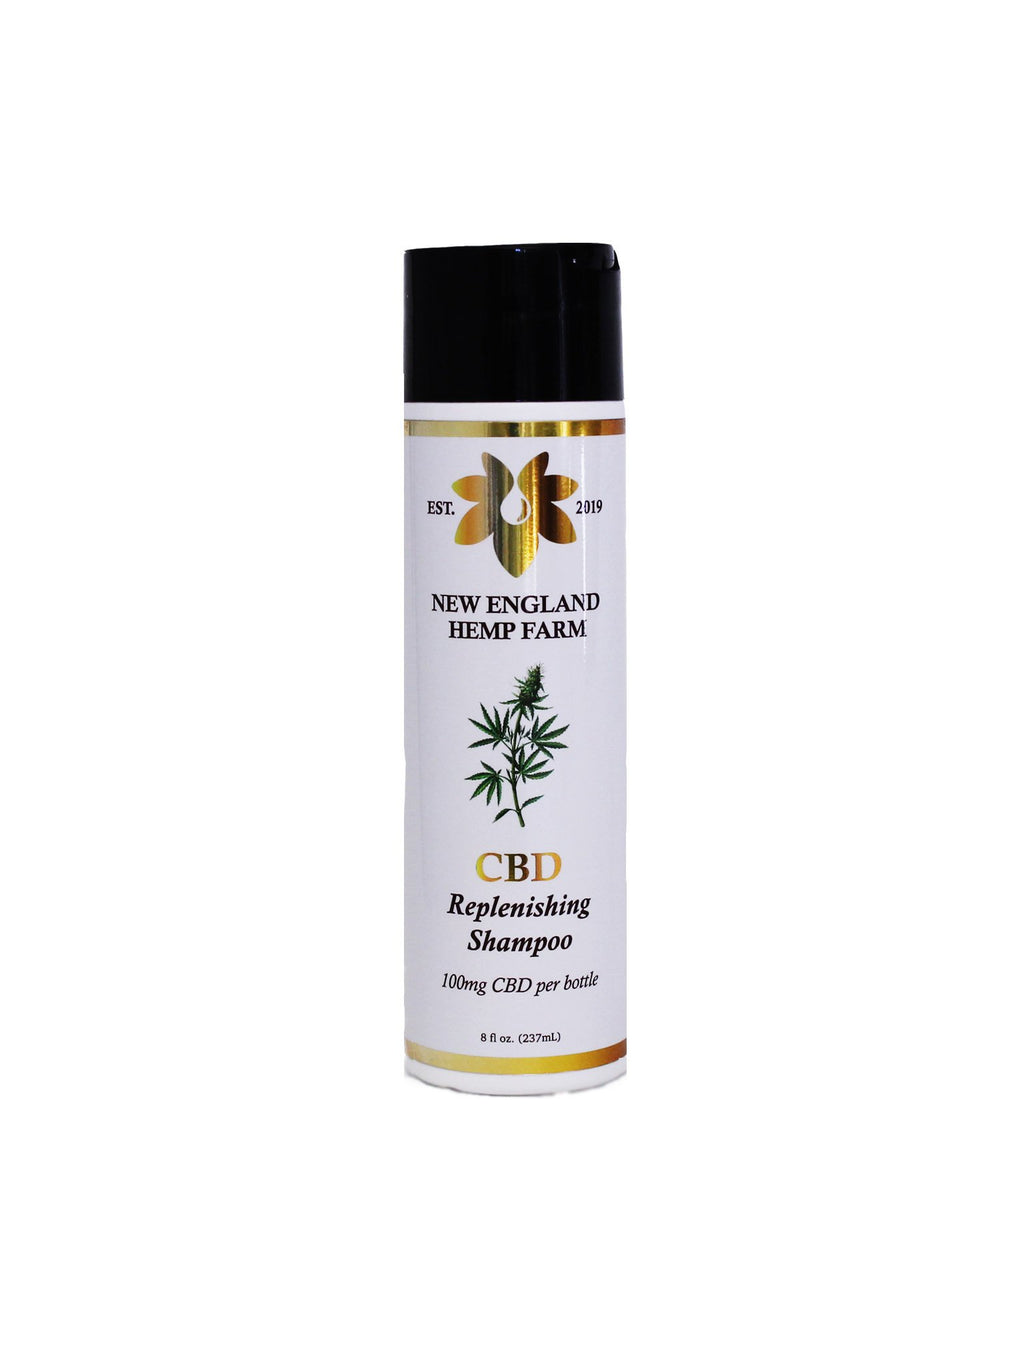 Replenishing Shampoo with 100mg CBD